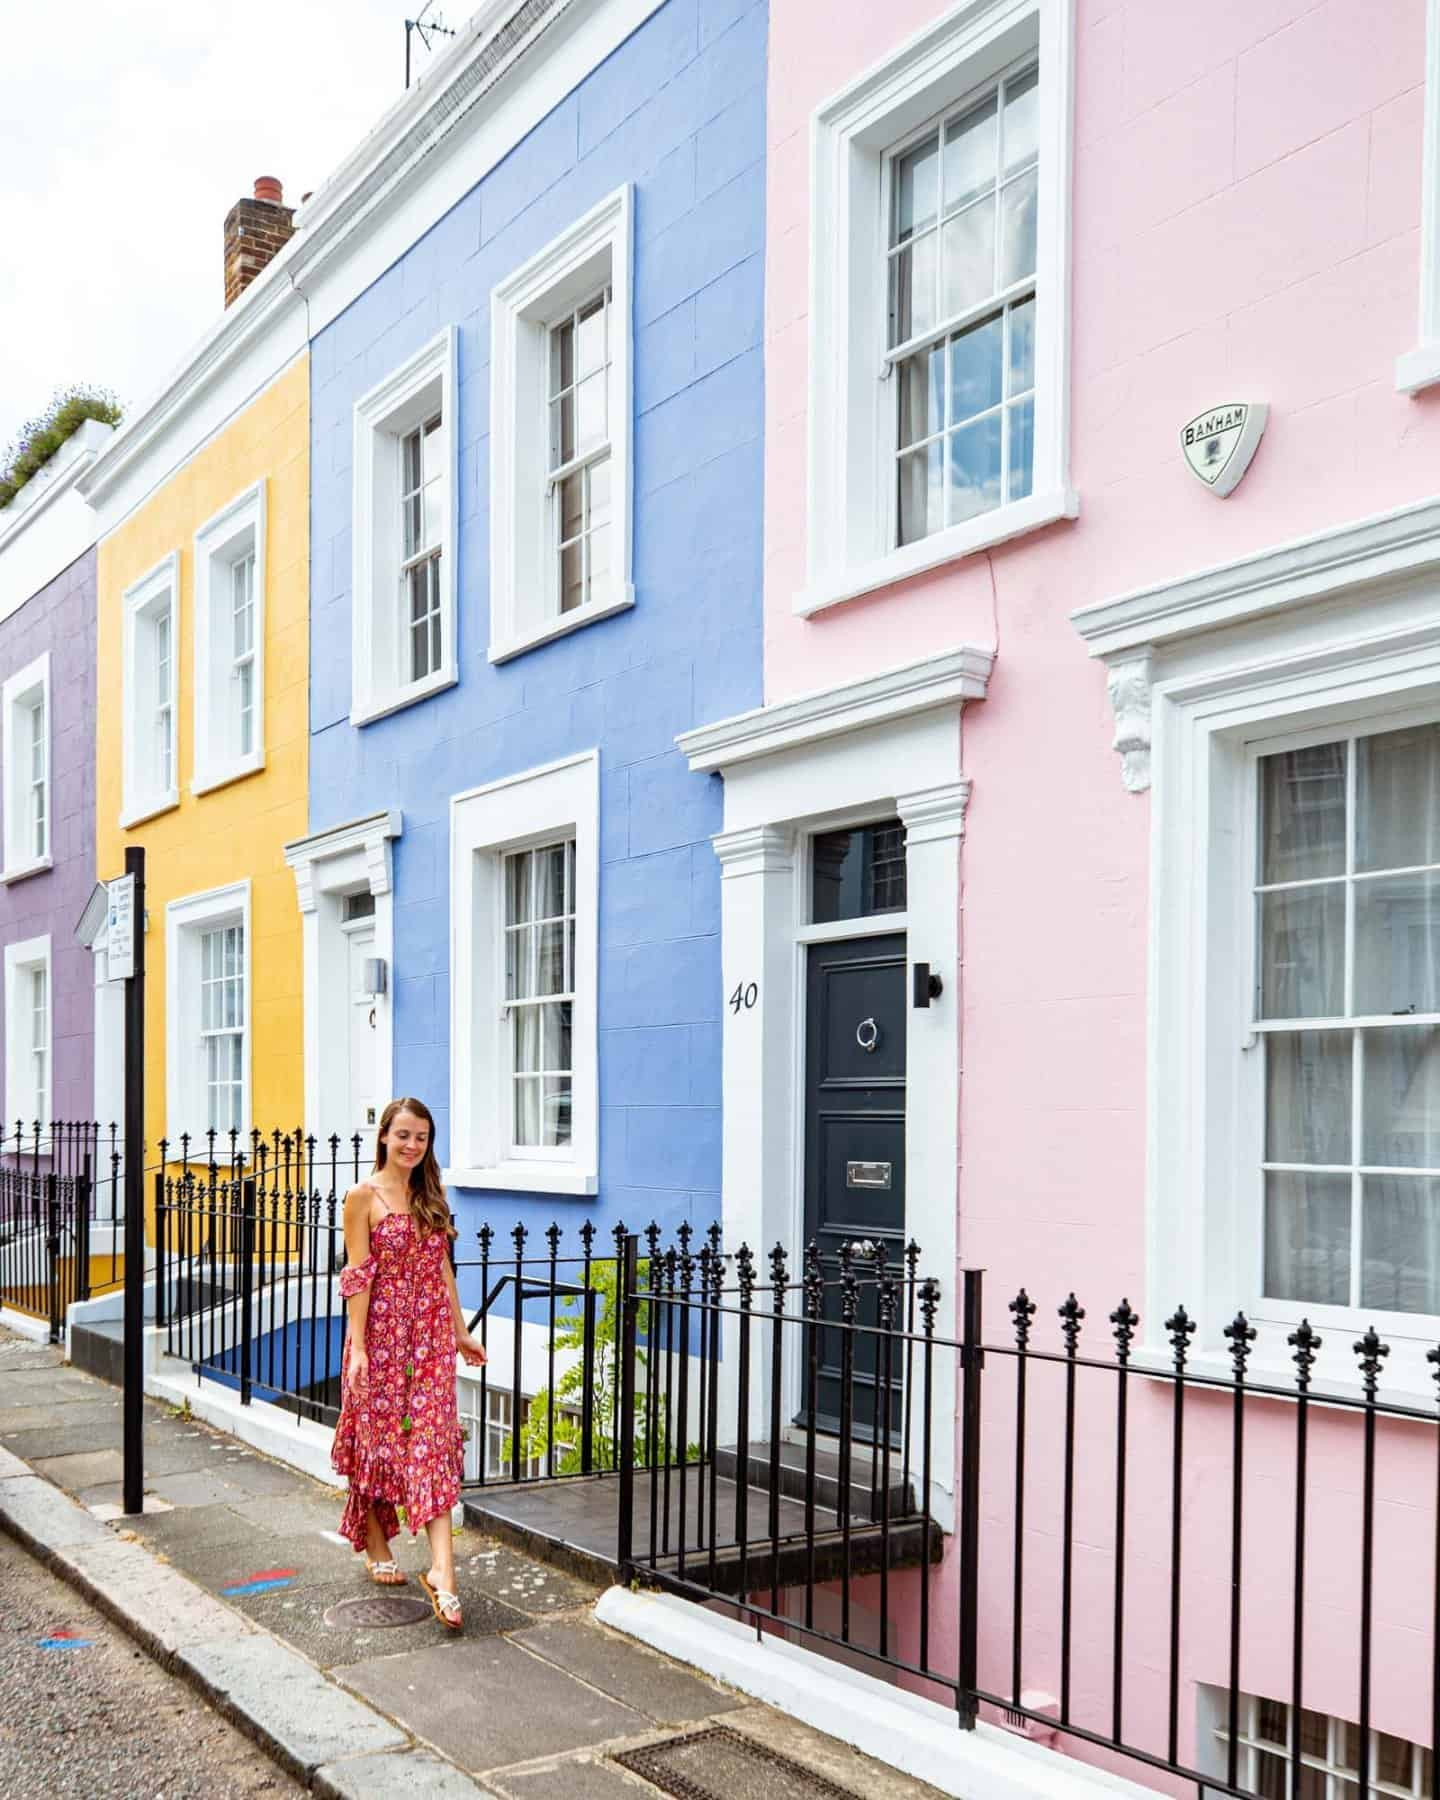 Hillgate Place Notting Hill colorful houses